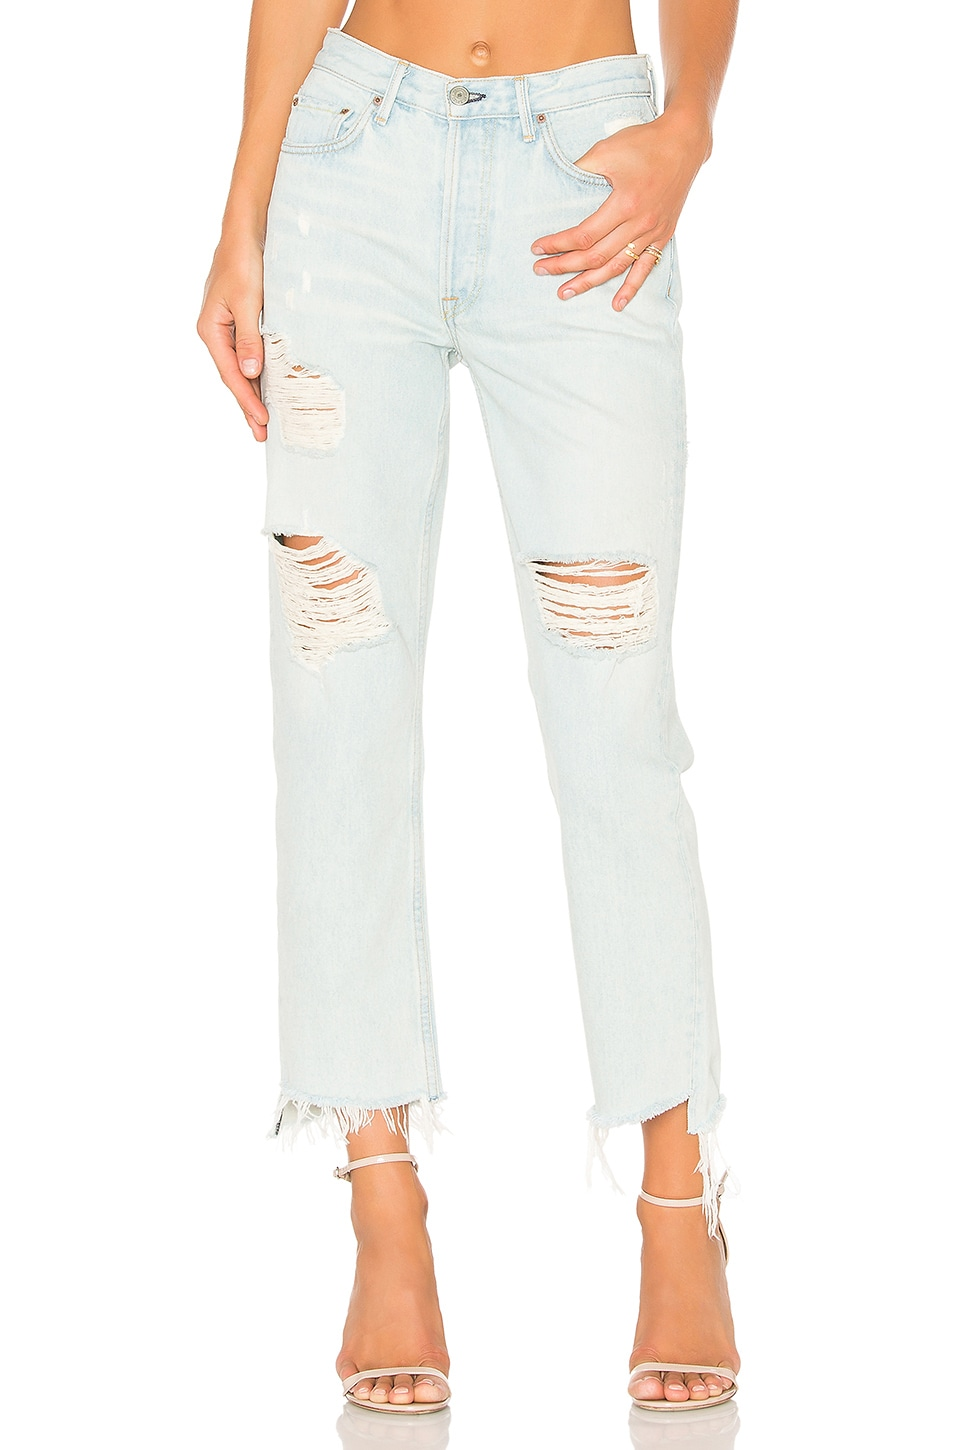 GRLFRND x REVOLVE Helena High-Rise Straight Leg Jean in Let It Be